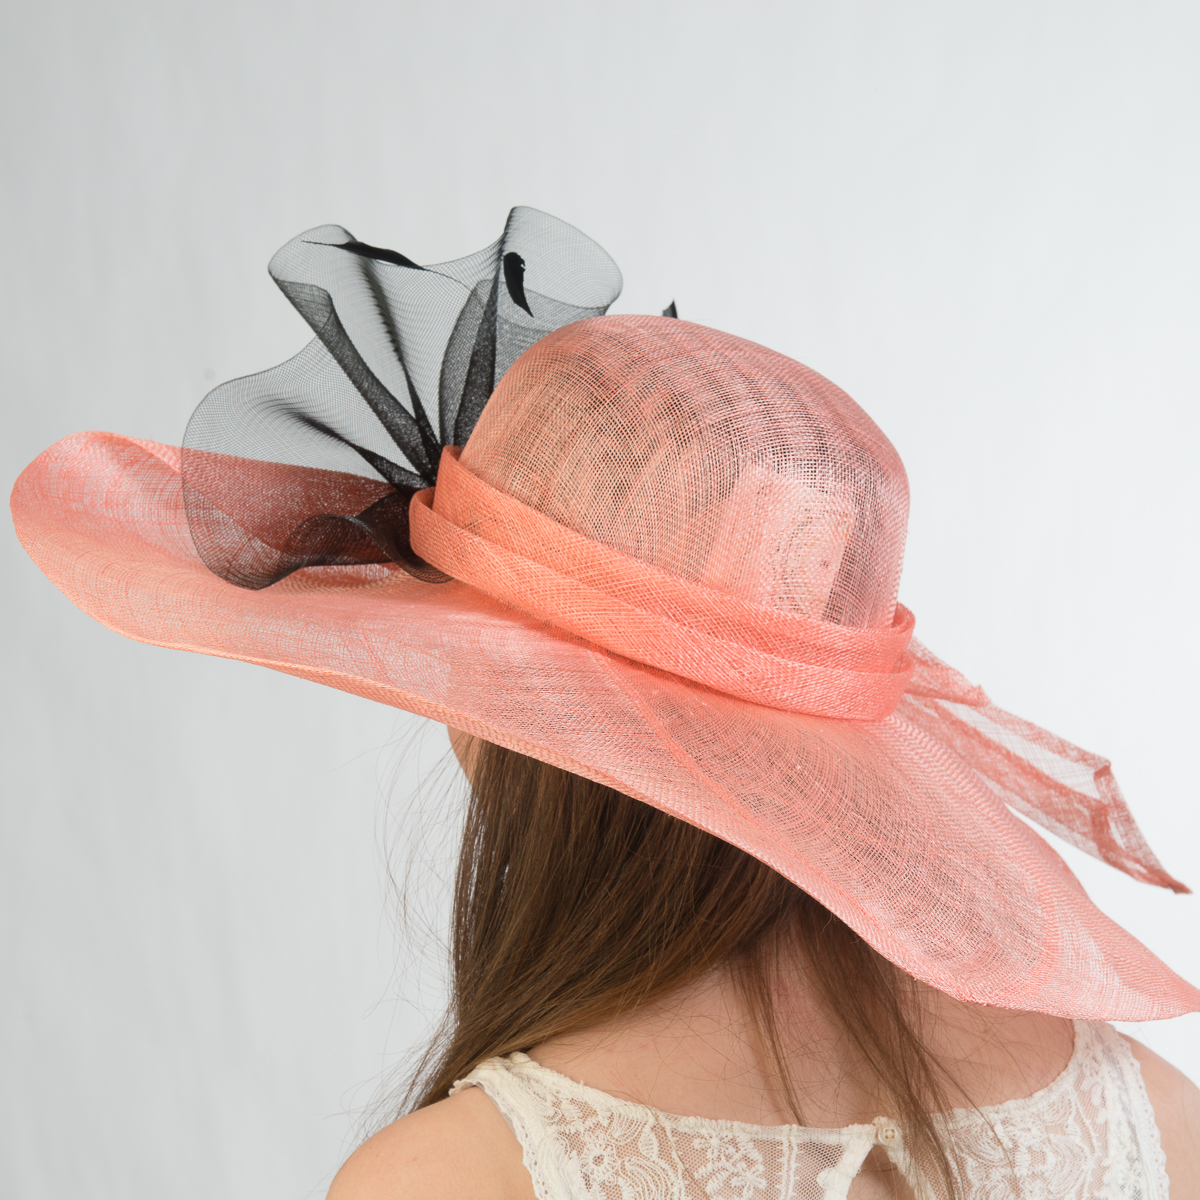 Bk Makeup Home: Peach-Bk Large Off Face Sinamay Hat-115078-38.12- Sun